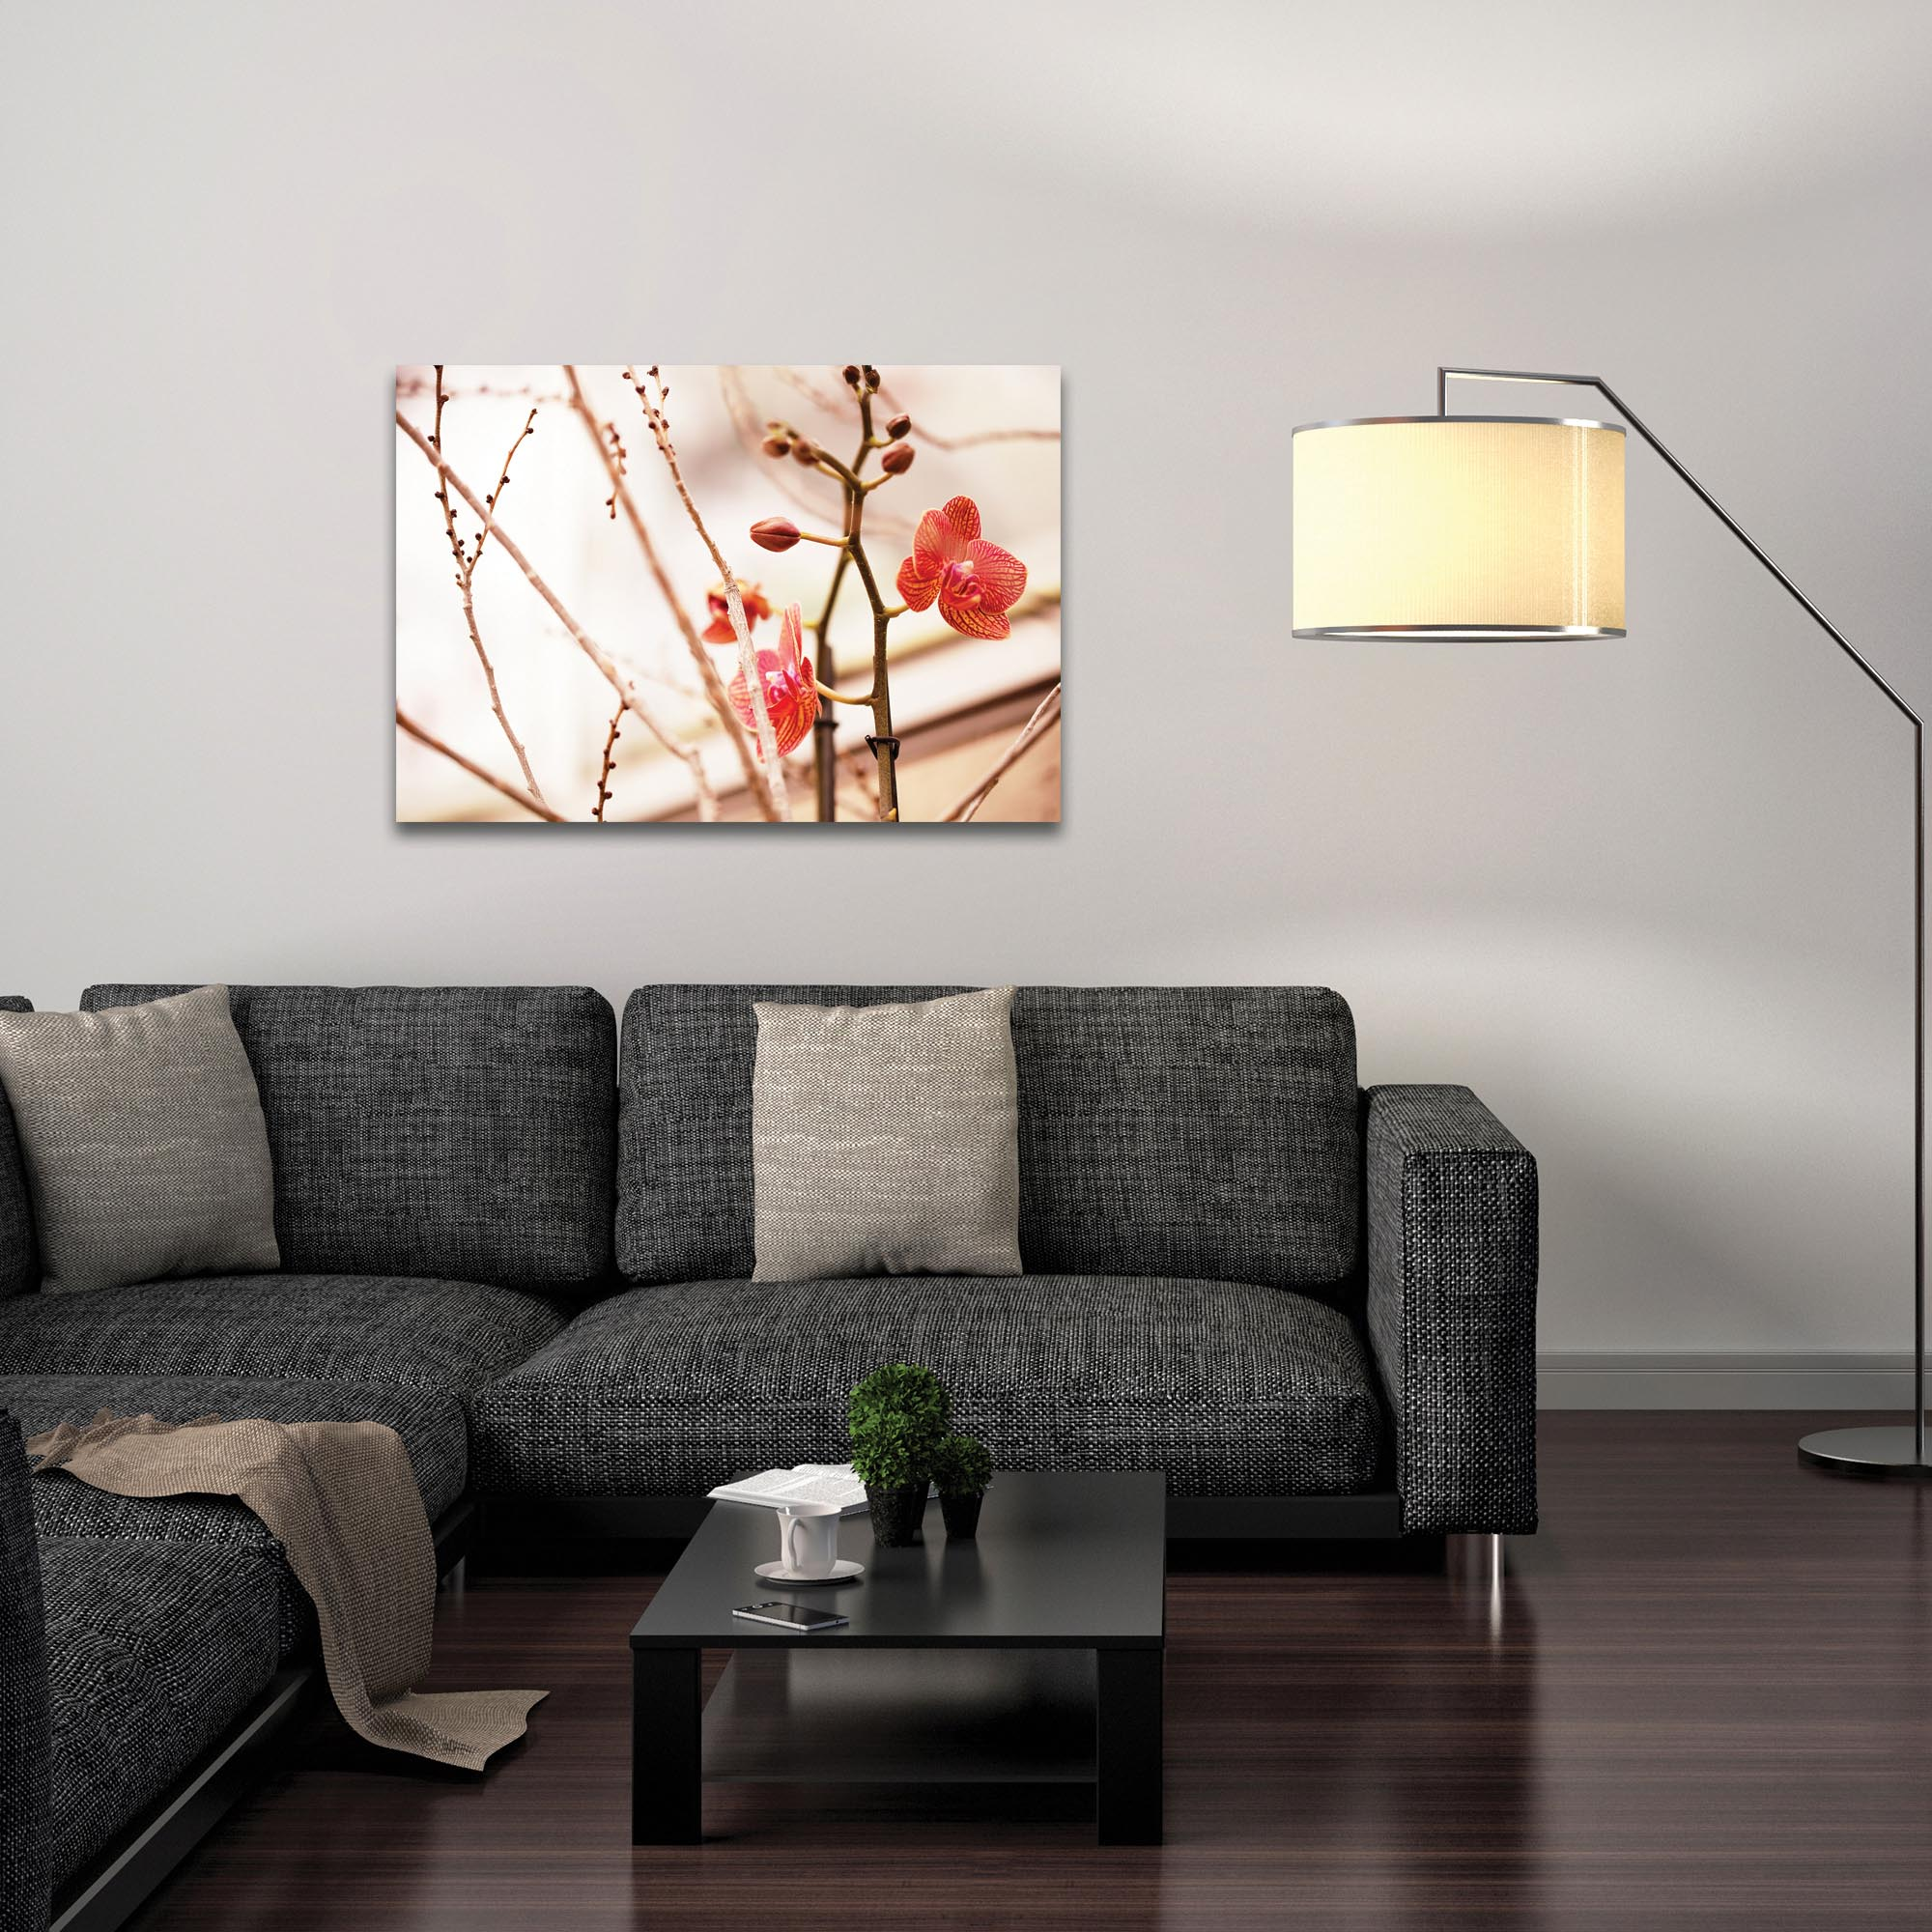 Nature Photography 'First Bloom' - Flower Blossom Art on Metal or Plexiglass - Lifestyle View